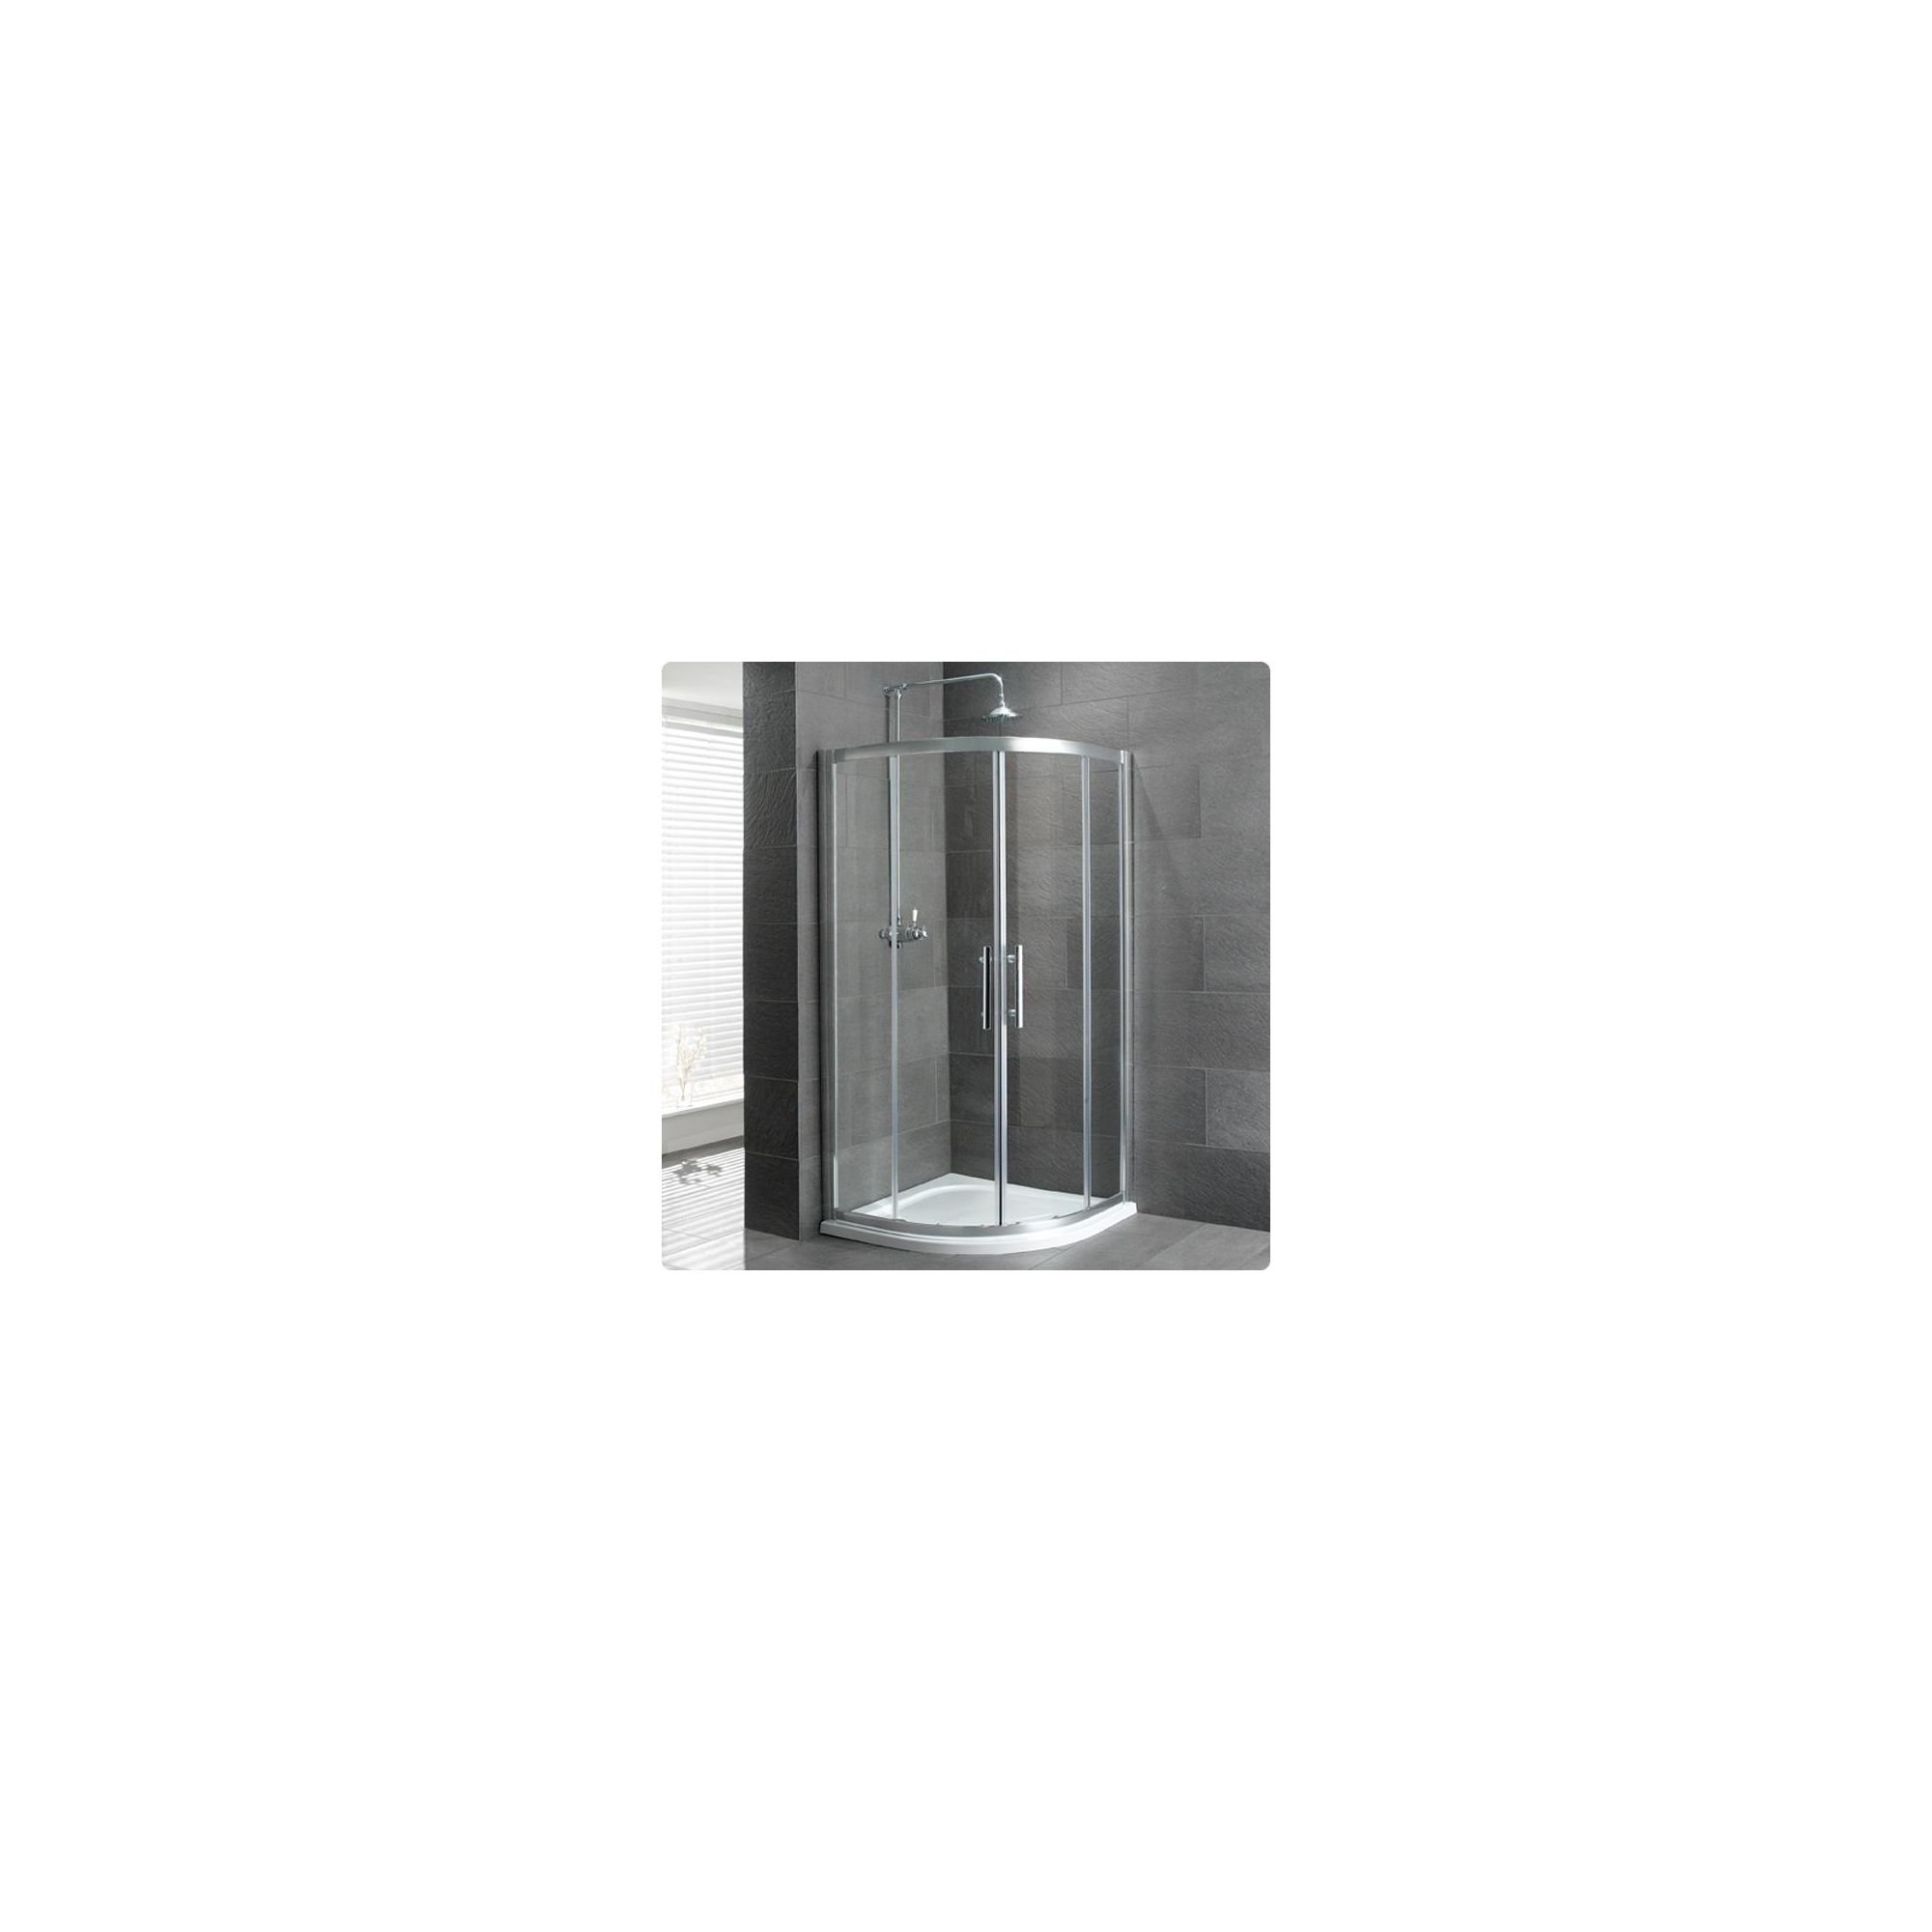 Duchy Select Silver 2 Door Quadrant Shower Enclosure 900mm, Standard Tray, 6mm Glass at Tesco Direct